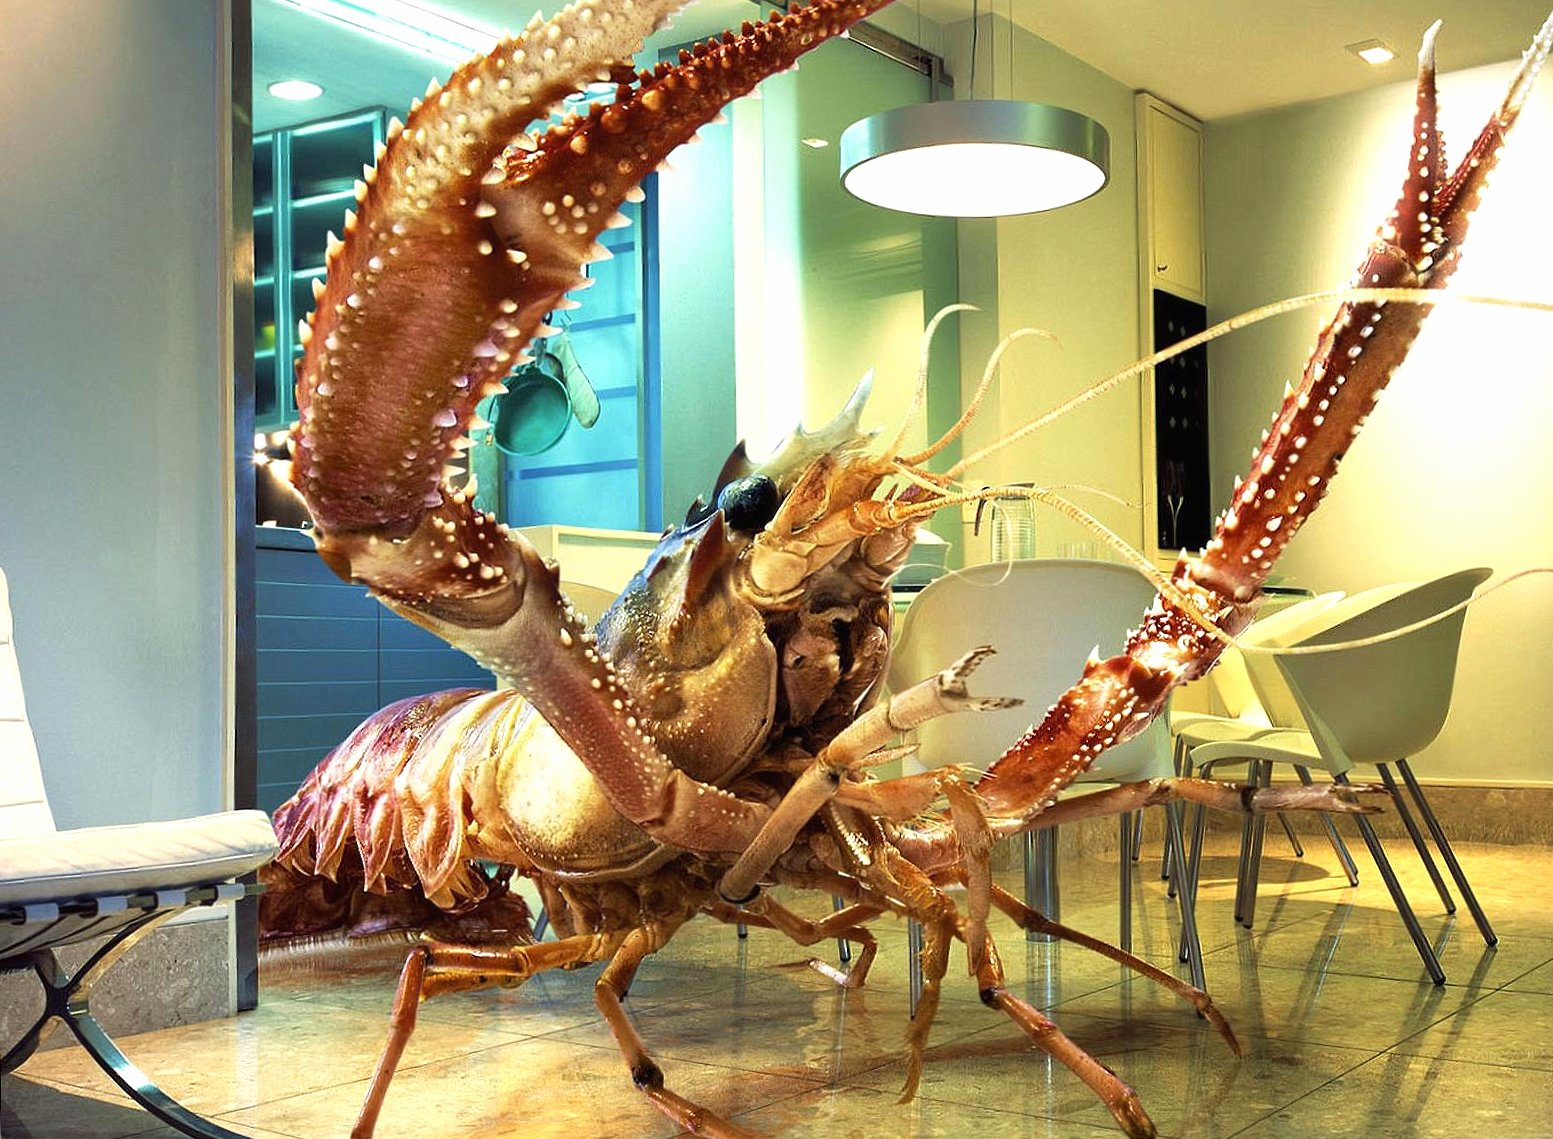 Funny huge lobster at home wallpapers HD quality